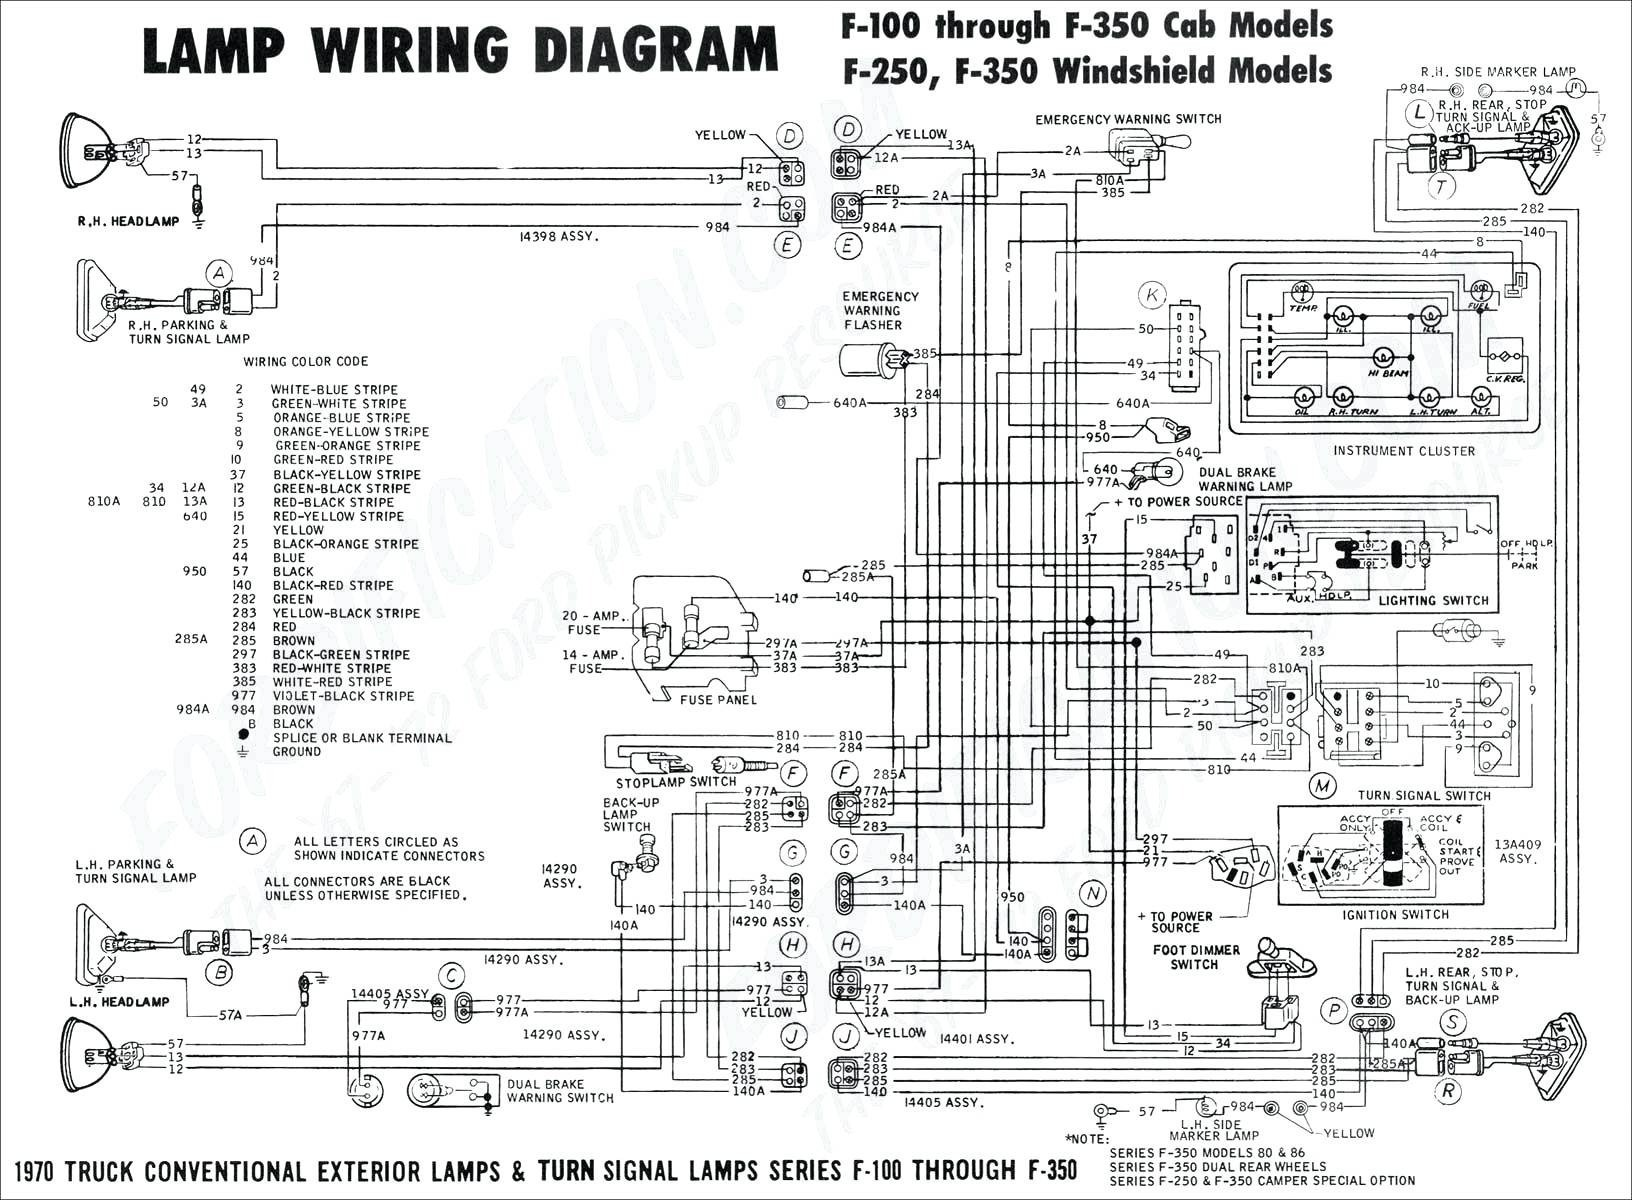 Parts Of A Trailer Hitch Diagram Trailer Hitch Wiring Diagram Download Of Parts Of A Trailer Hitch Diagram